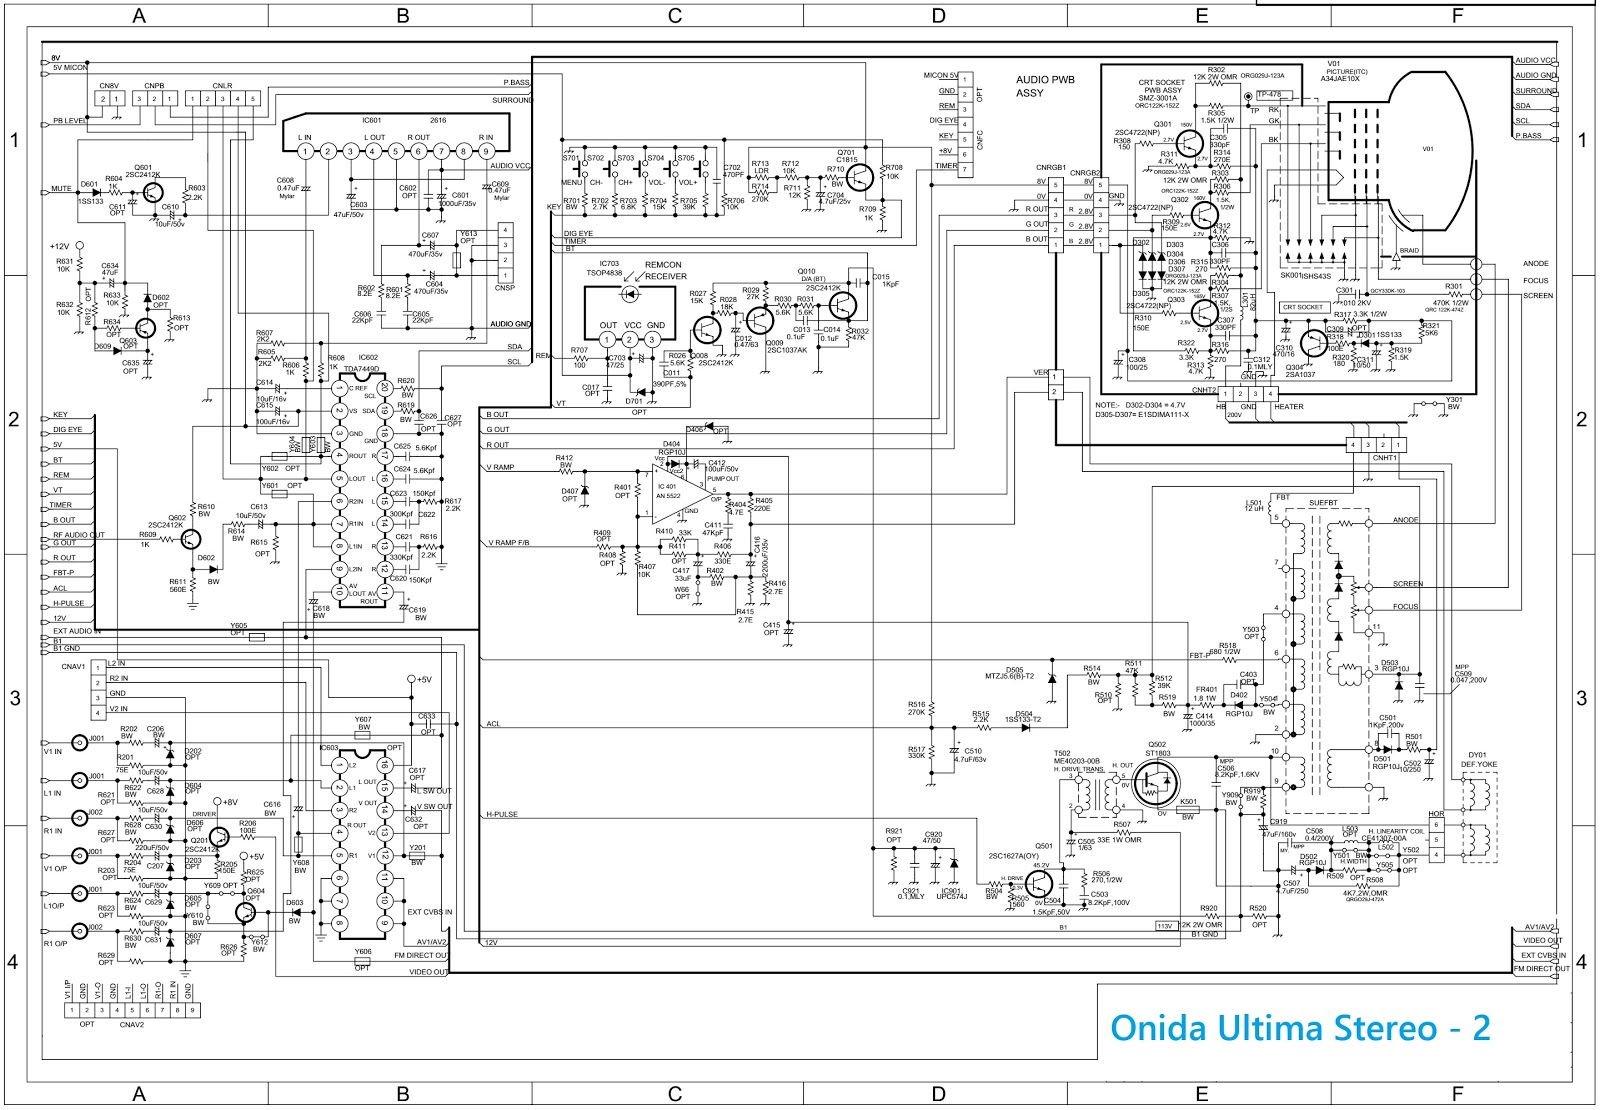 crt tv schematic diagram  crt tv circuit board diagram circuit diagram images  schematic